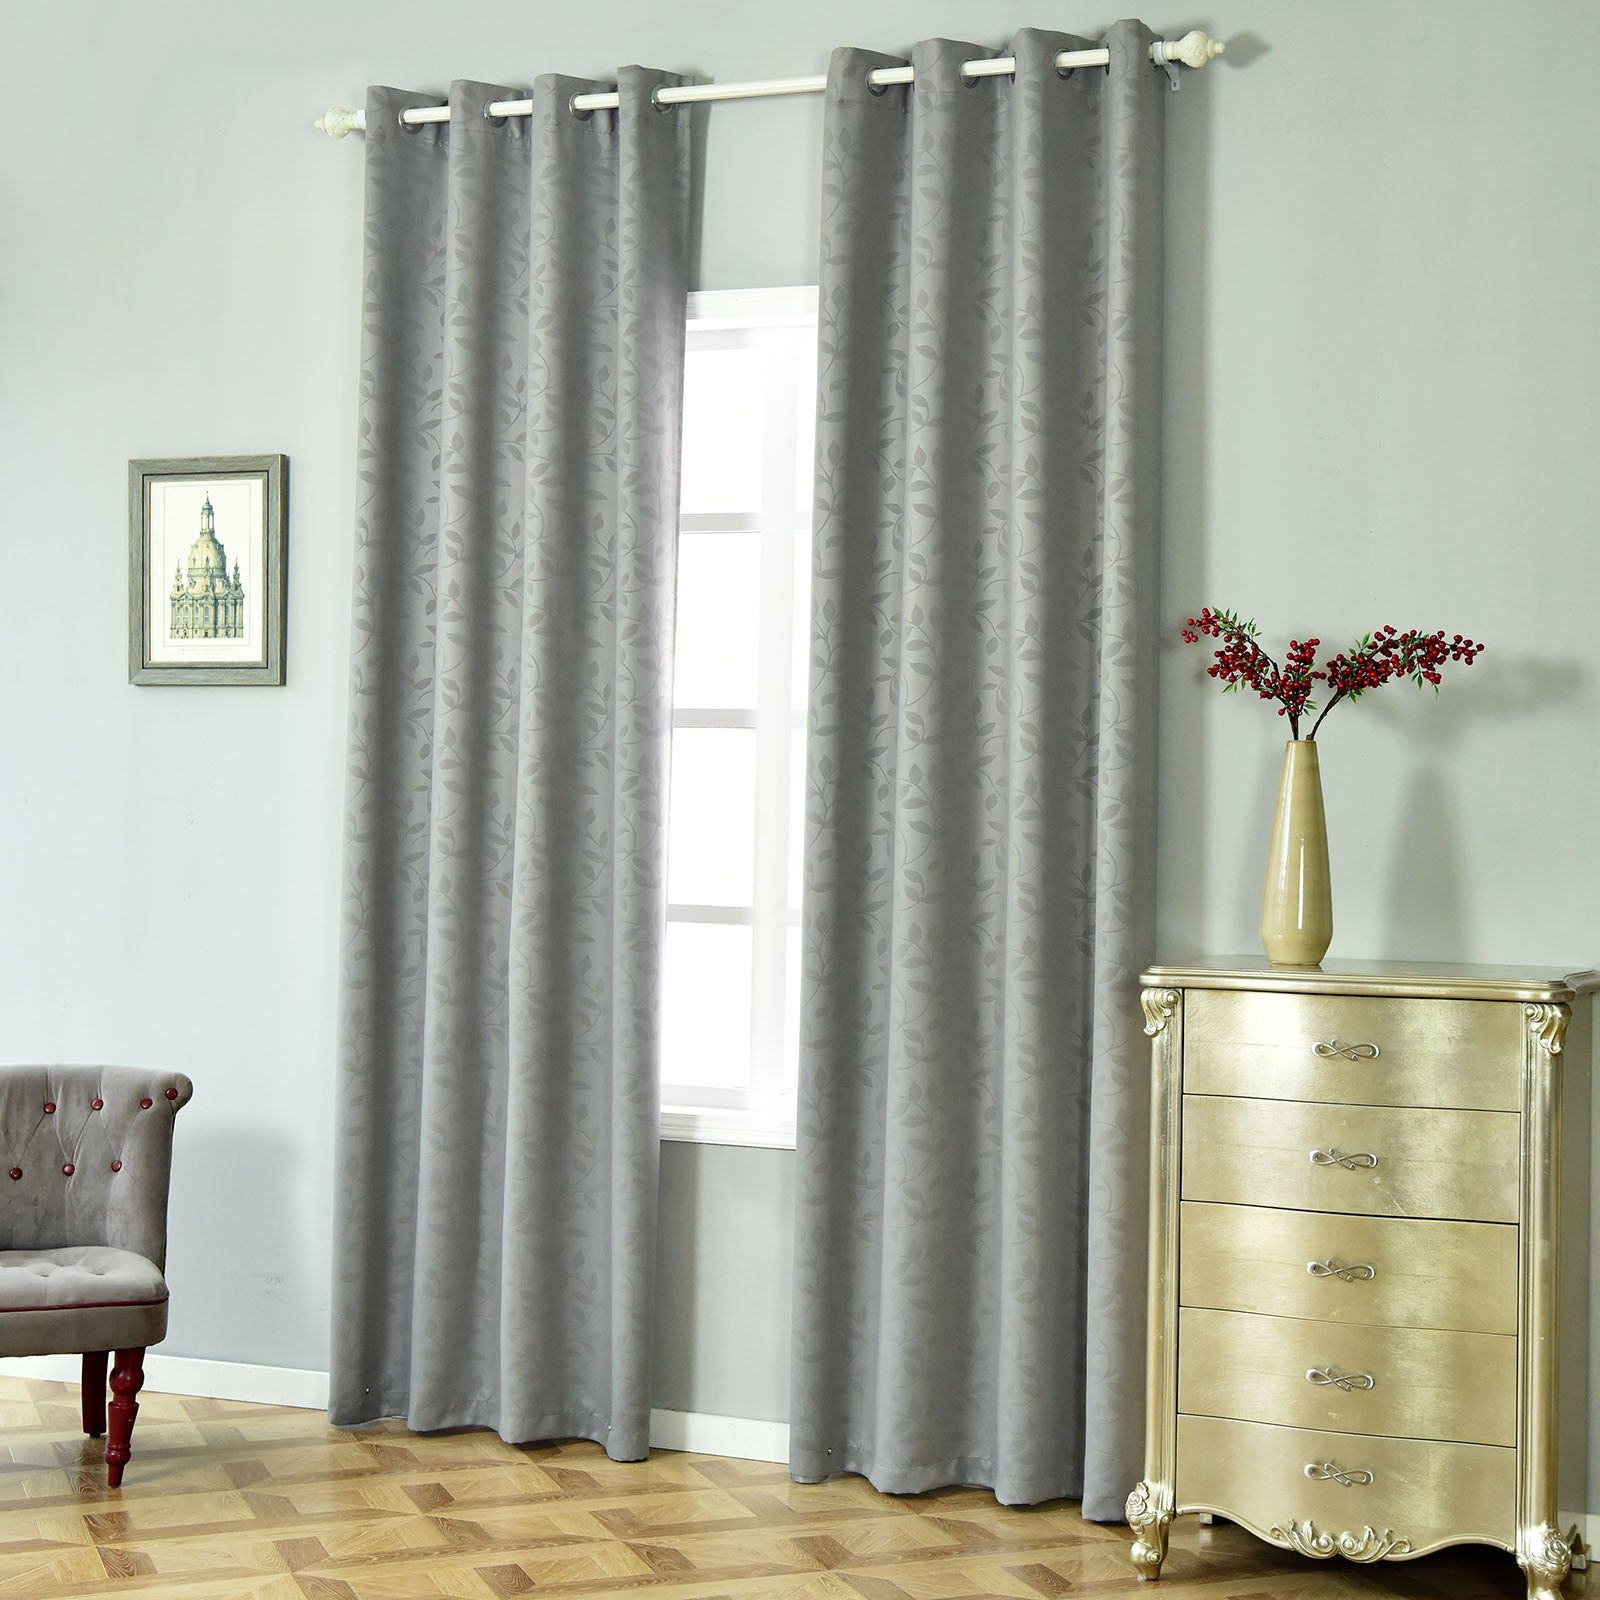 Charcoal Grey Blackout Curtains 2 Packs Embossed